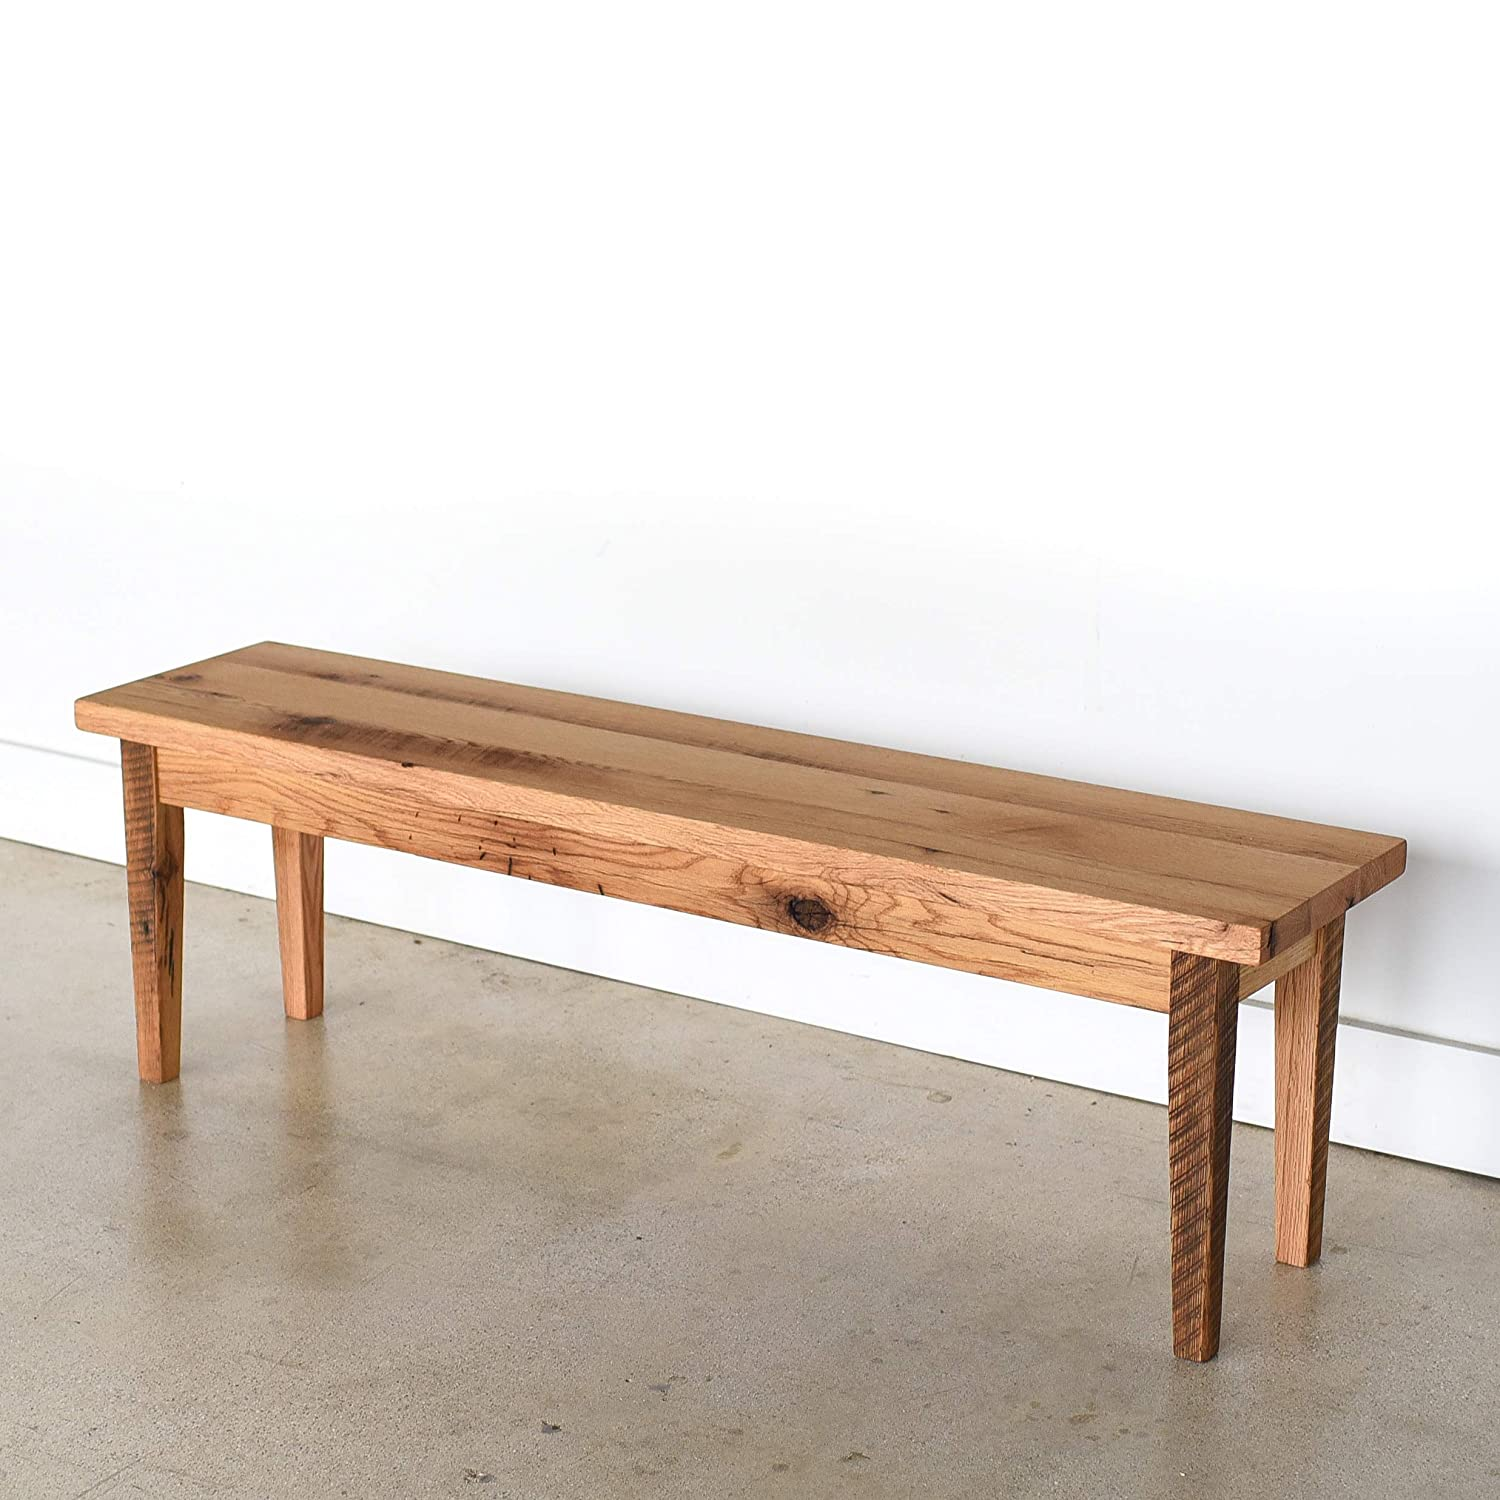 Awesome Amazon Com Reclaimed Wood Plank Bench With Tapered Legs Dailytribune Chair Design For Home Dailytribuneorg